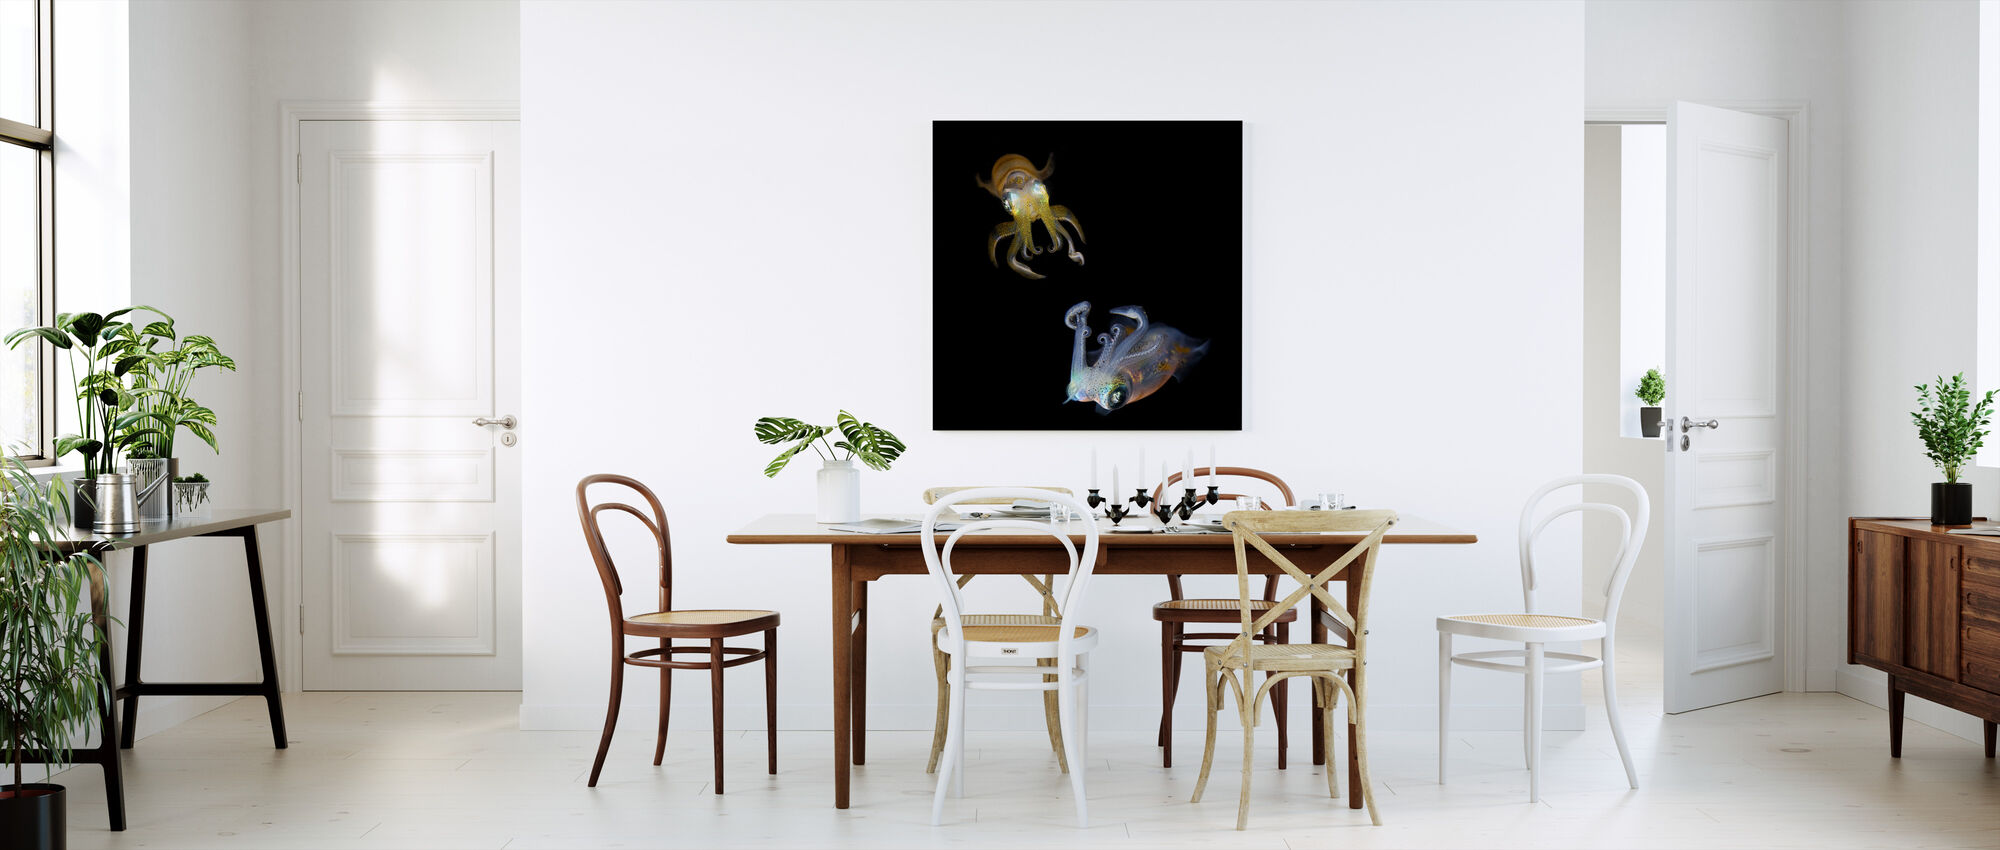 Glowing Squids - Canvas print - Kitchen